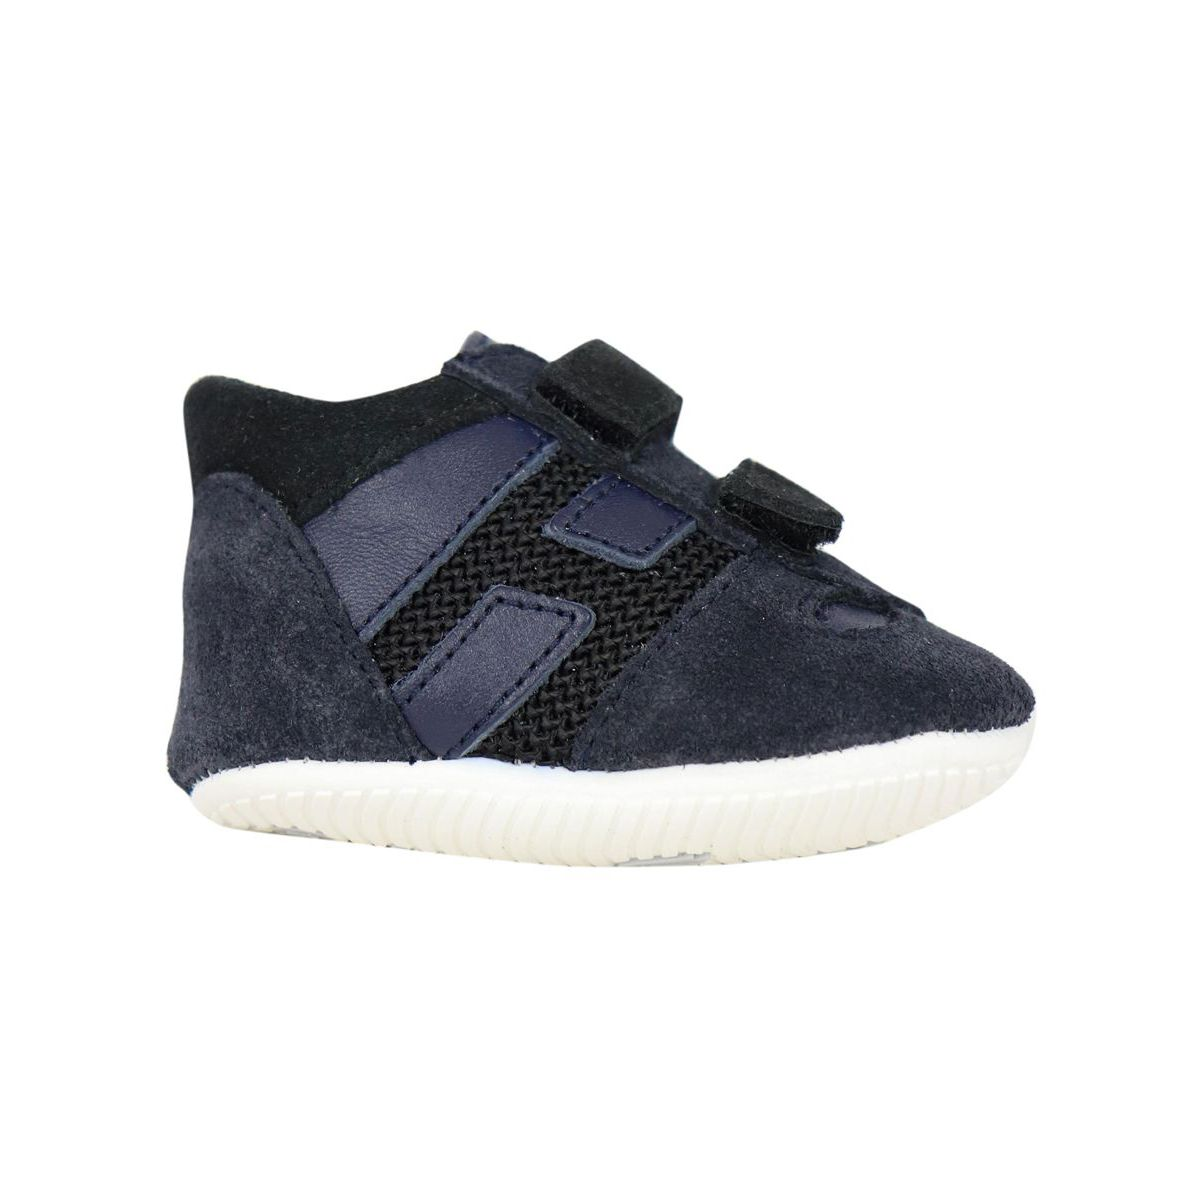 Olympia sneakers with double strap buckles Blue Hogan